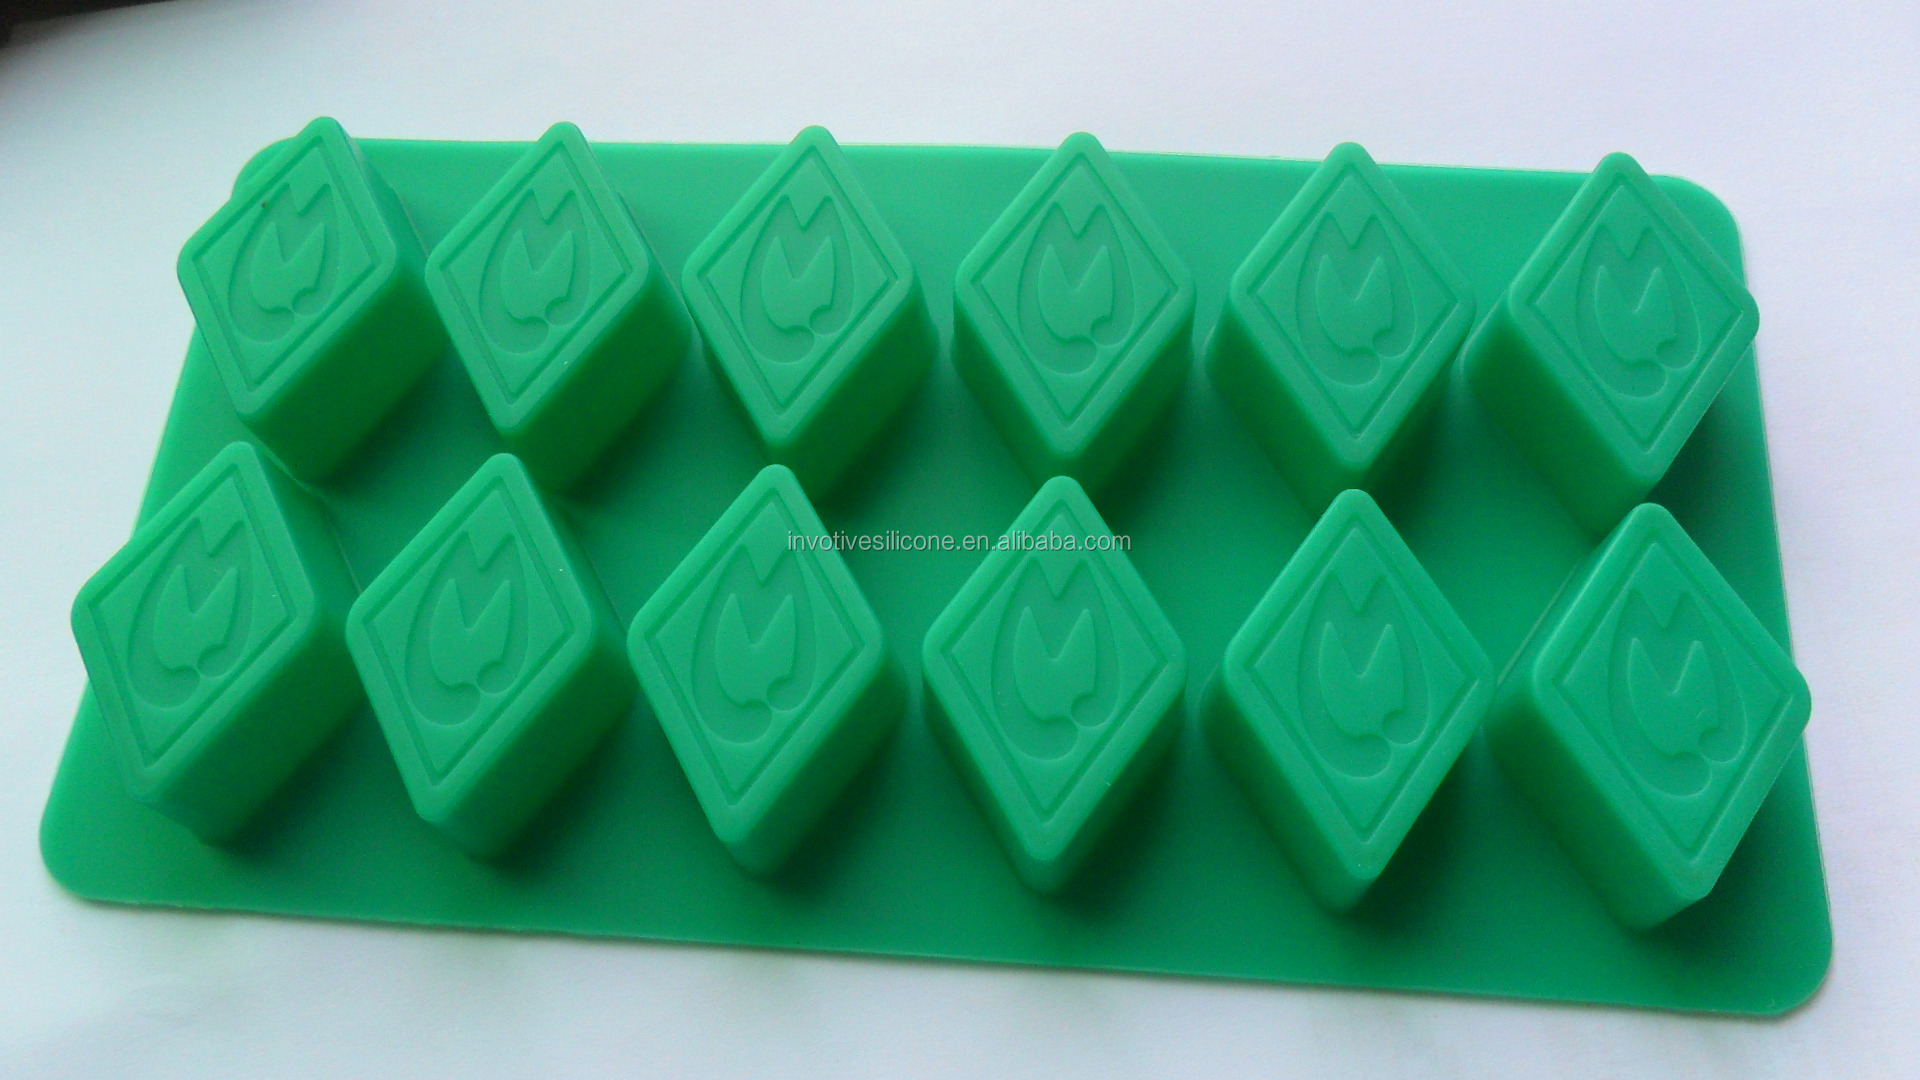 BSCI Factory custom logo silicone ice cube tray ice mould ice mold for promotional gift